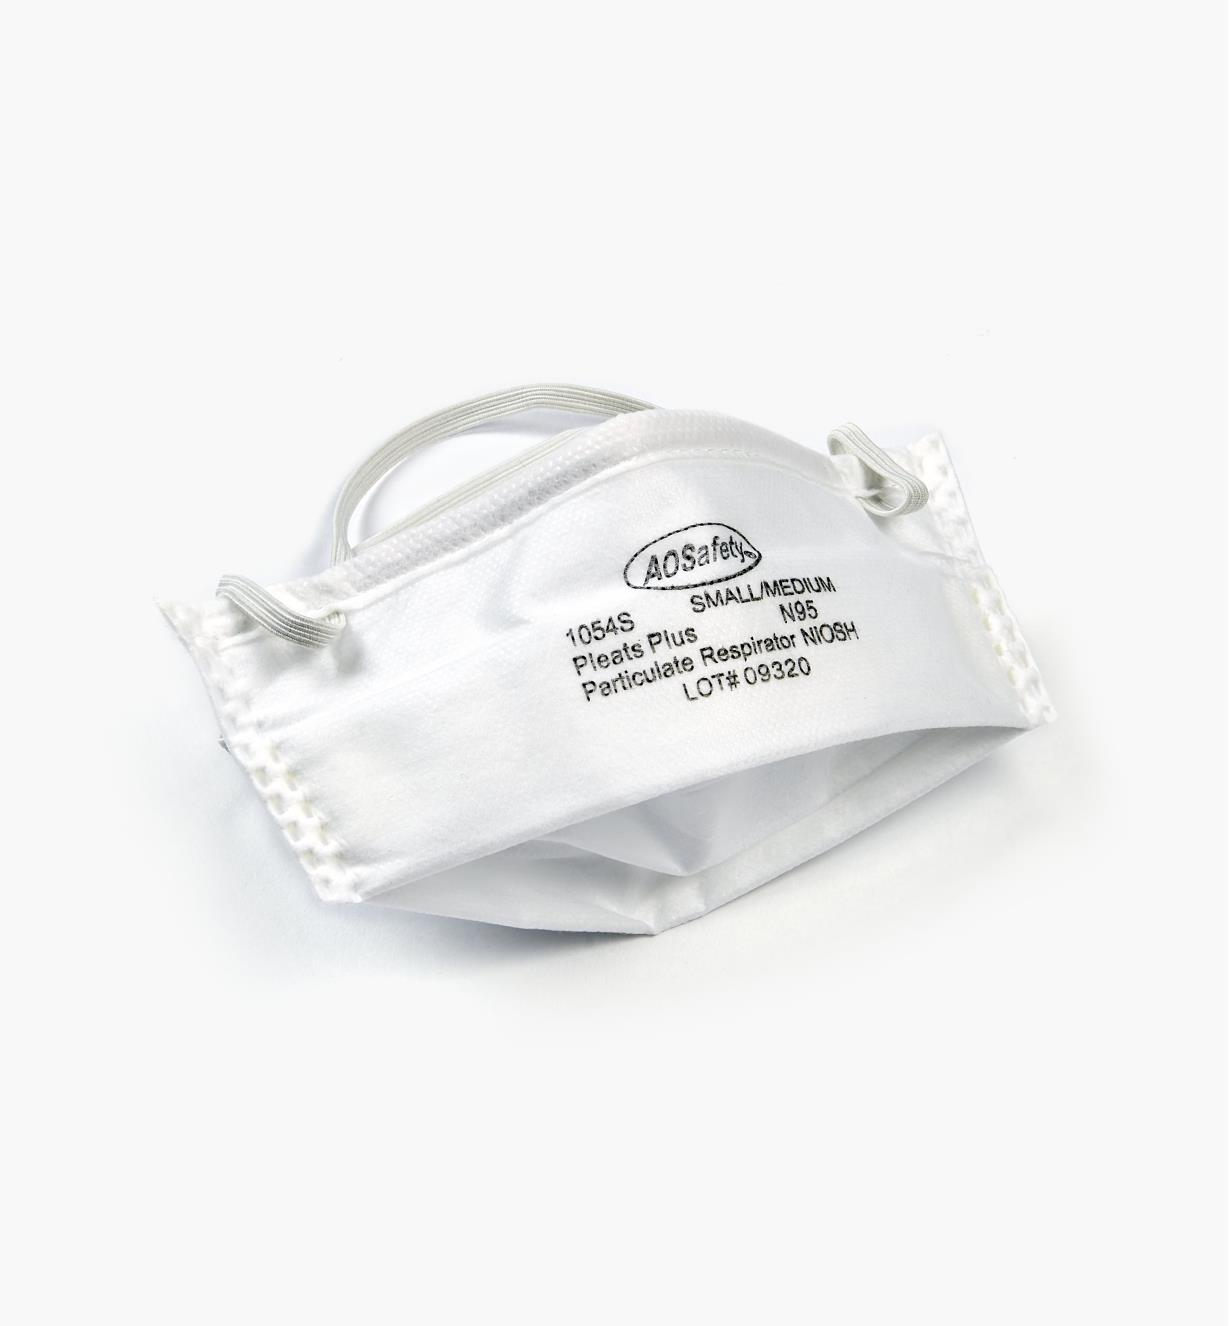 99W8961 - Small/Medium Pleated Dust Masks, pkg of 24